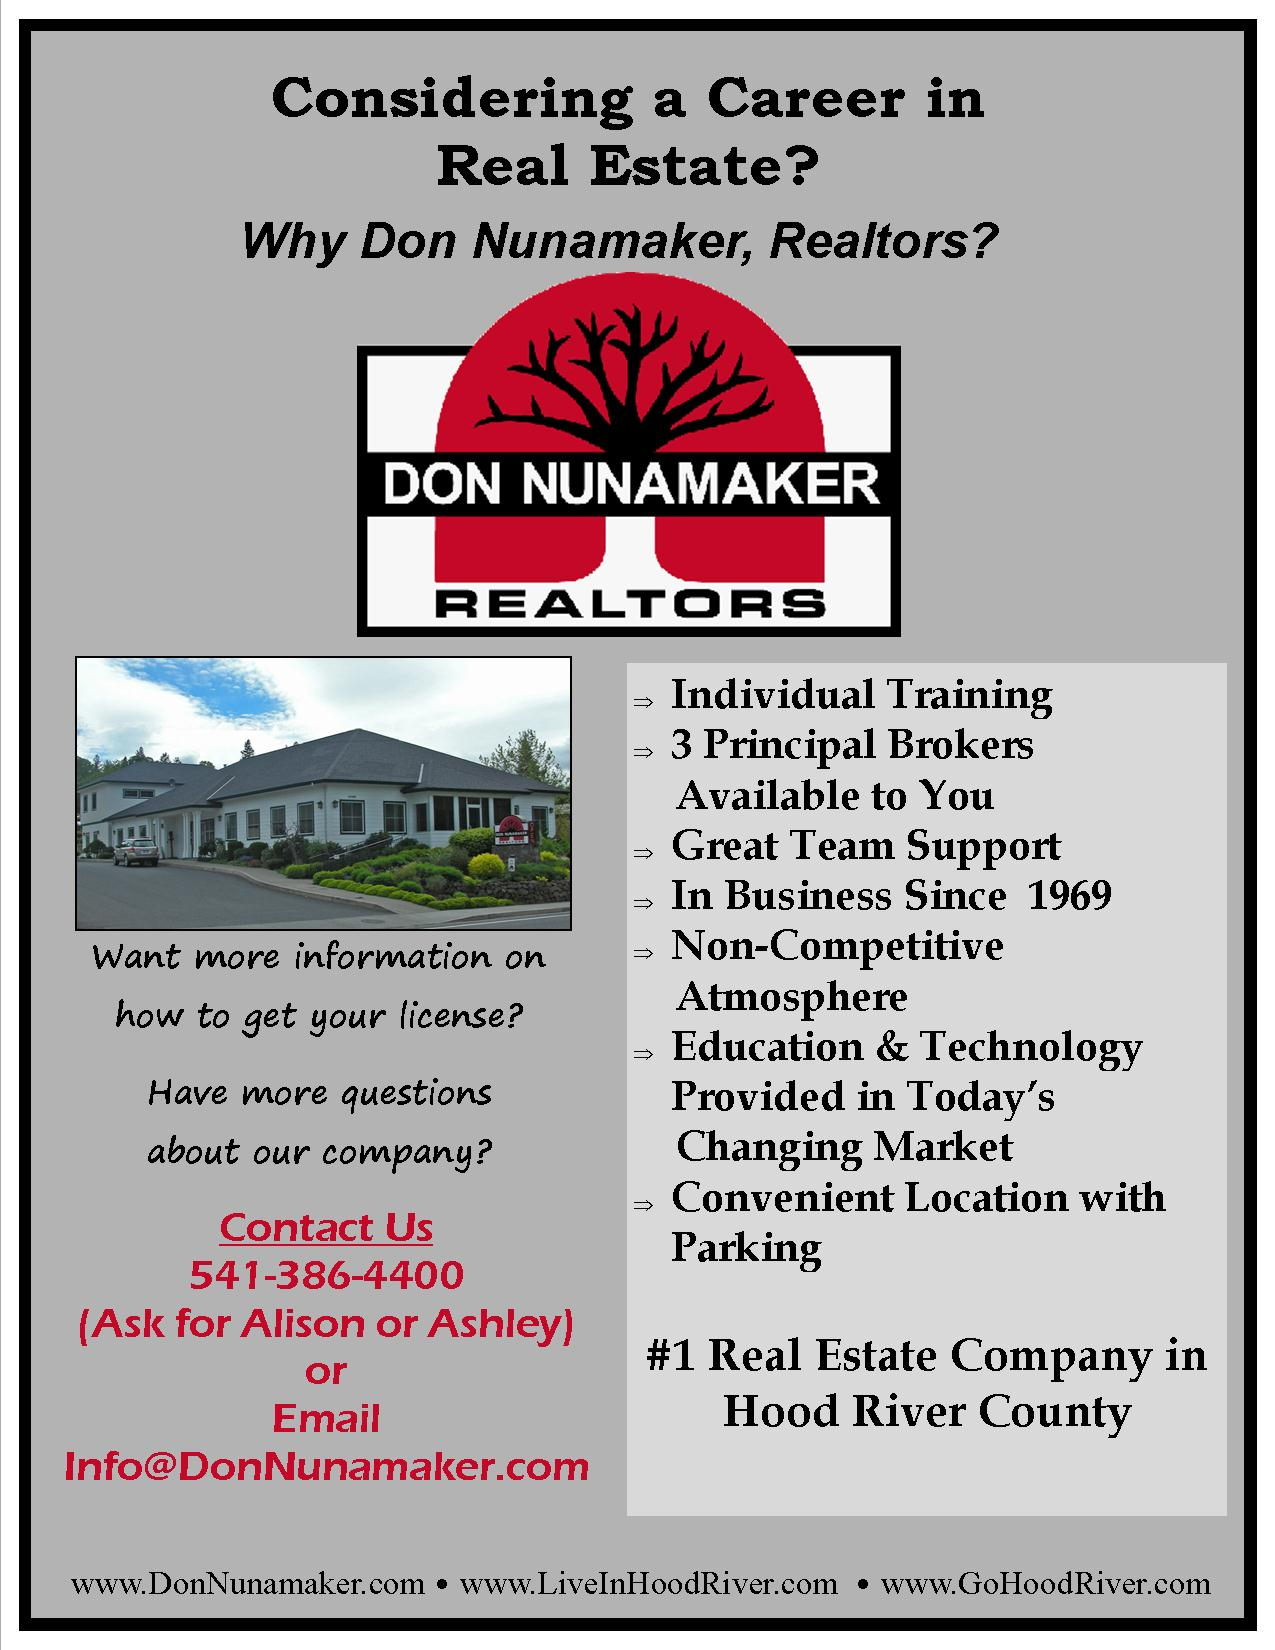 Career in Real Estate in Hood River